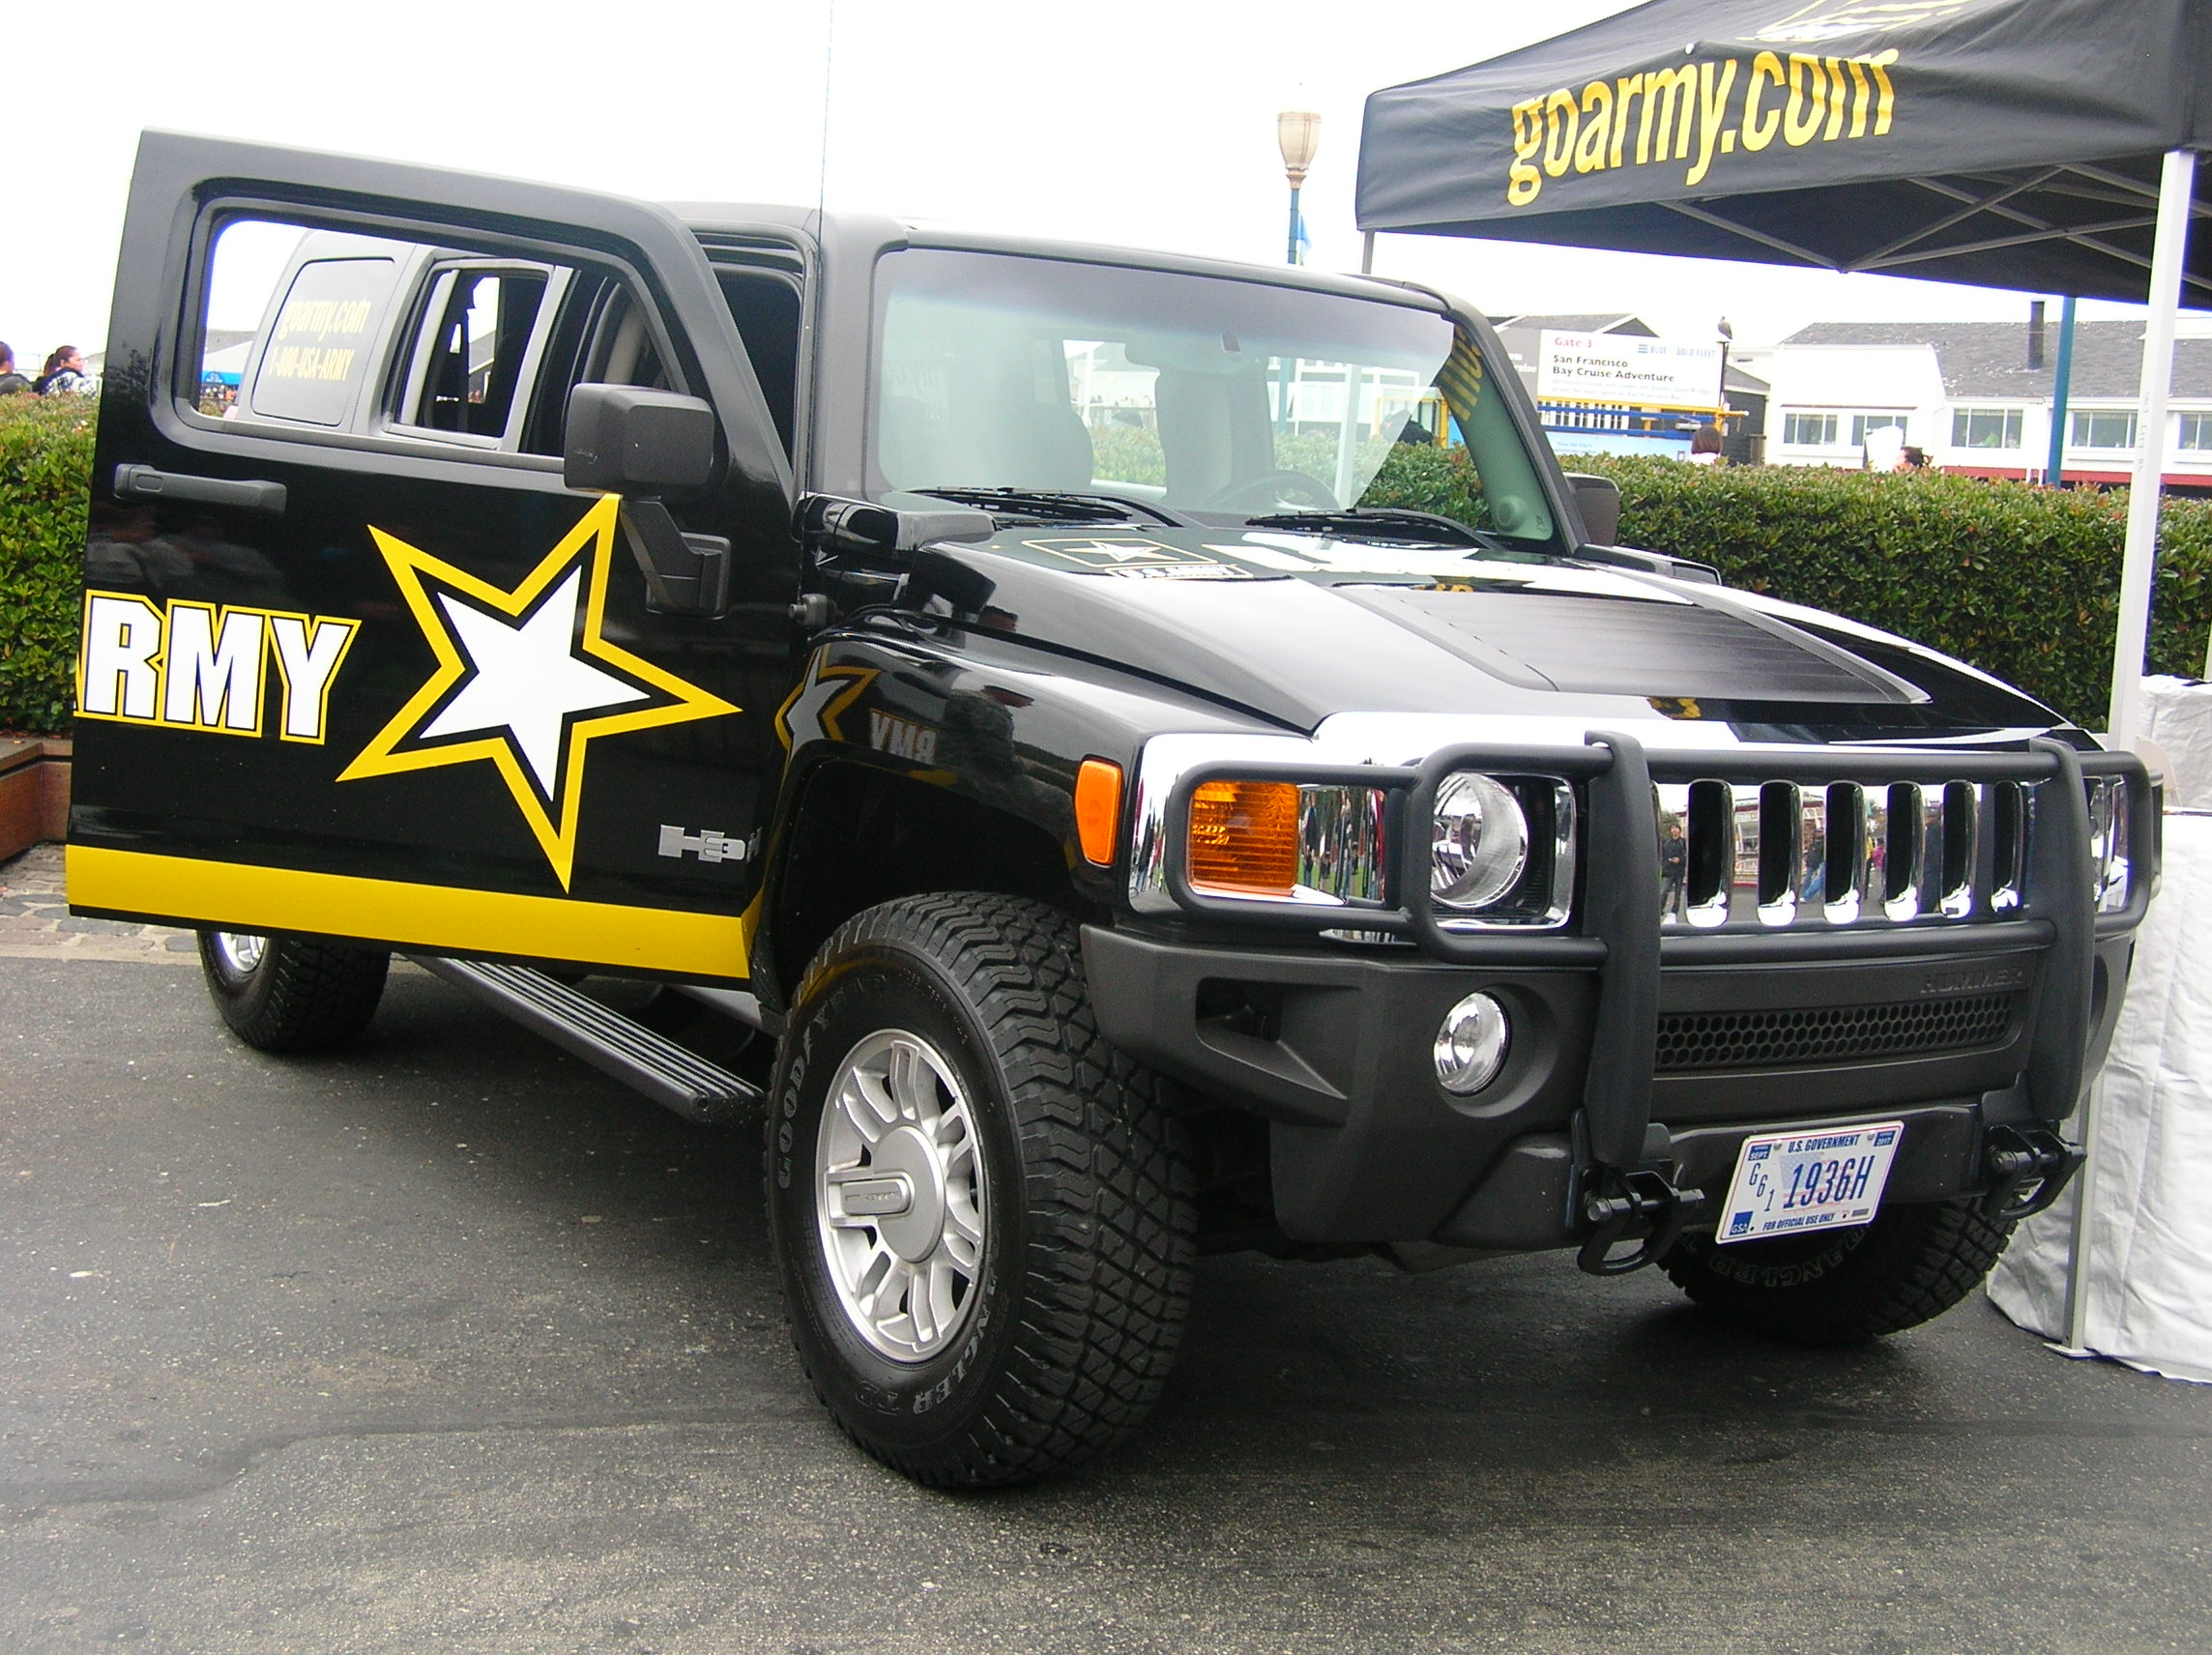 File US Army Hummer H3 at SF Fleet Week 2009 2 JPG Wikimedia mons